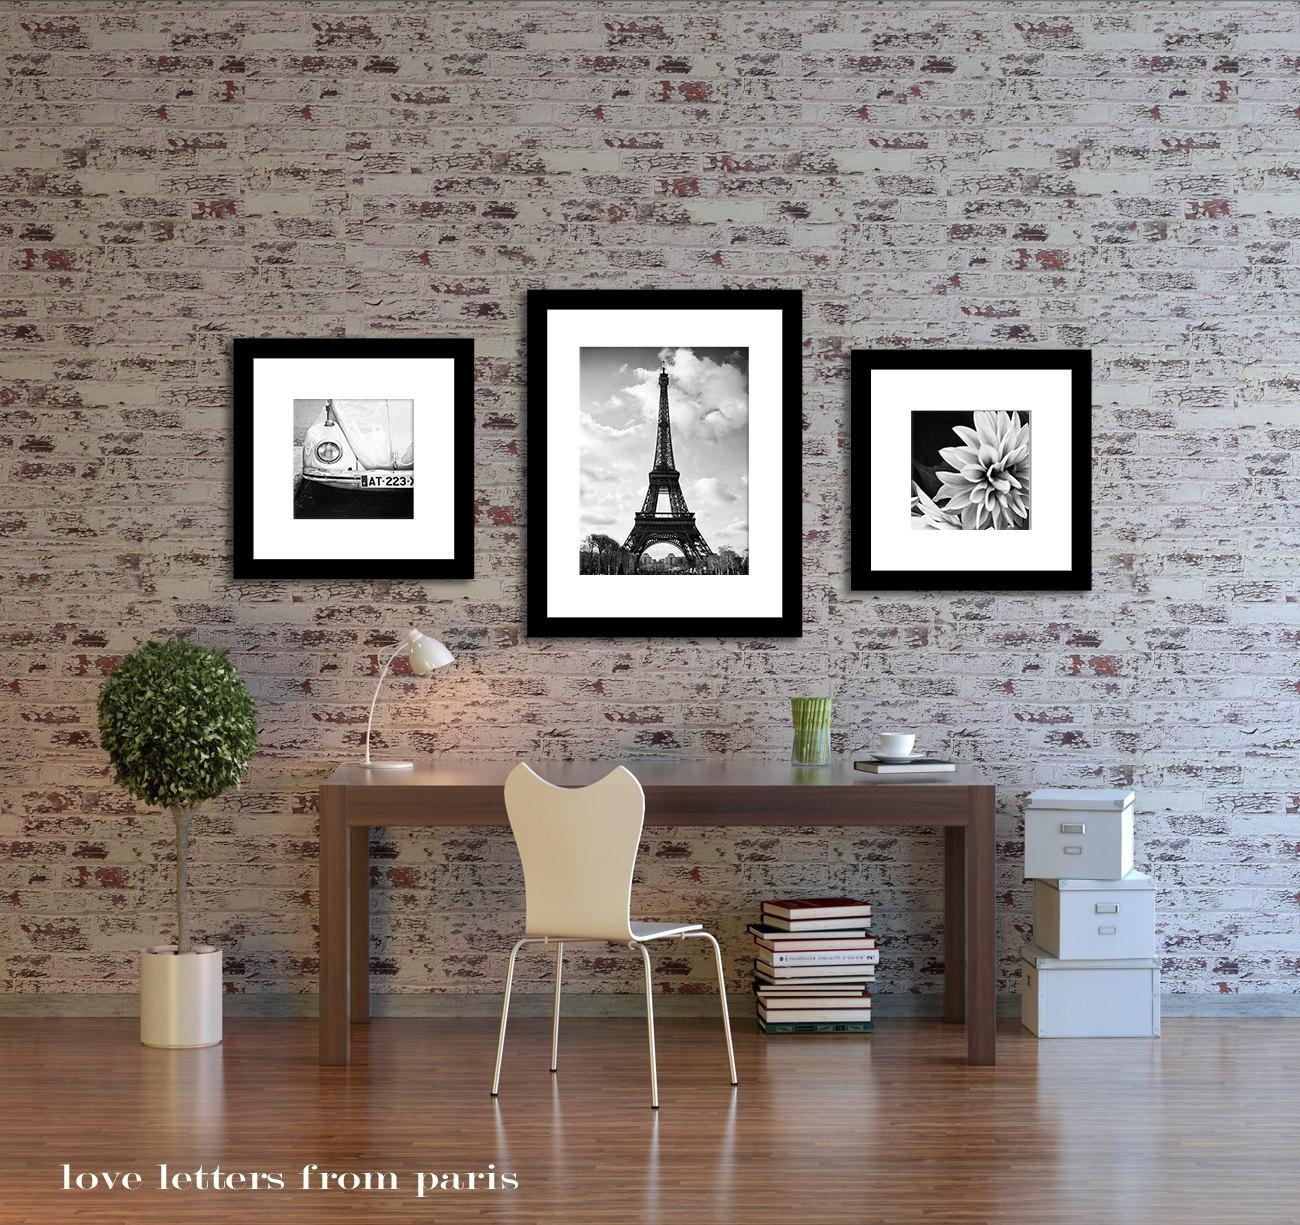 Wall Decor Photography Entrancing Design Ideas Top Parisian Home Pertaining To Paris Theme Wall Art (View 6 of 20)